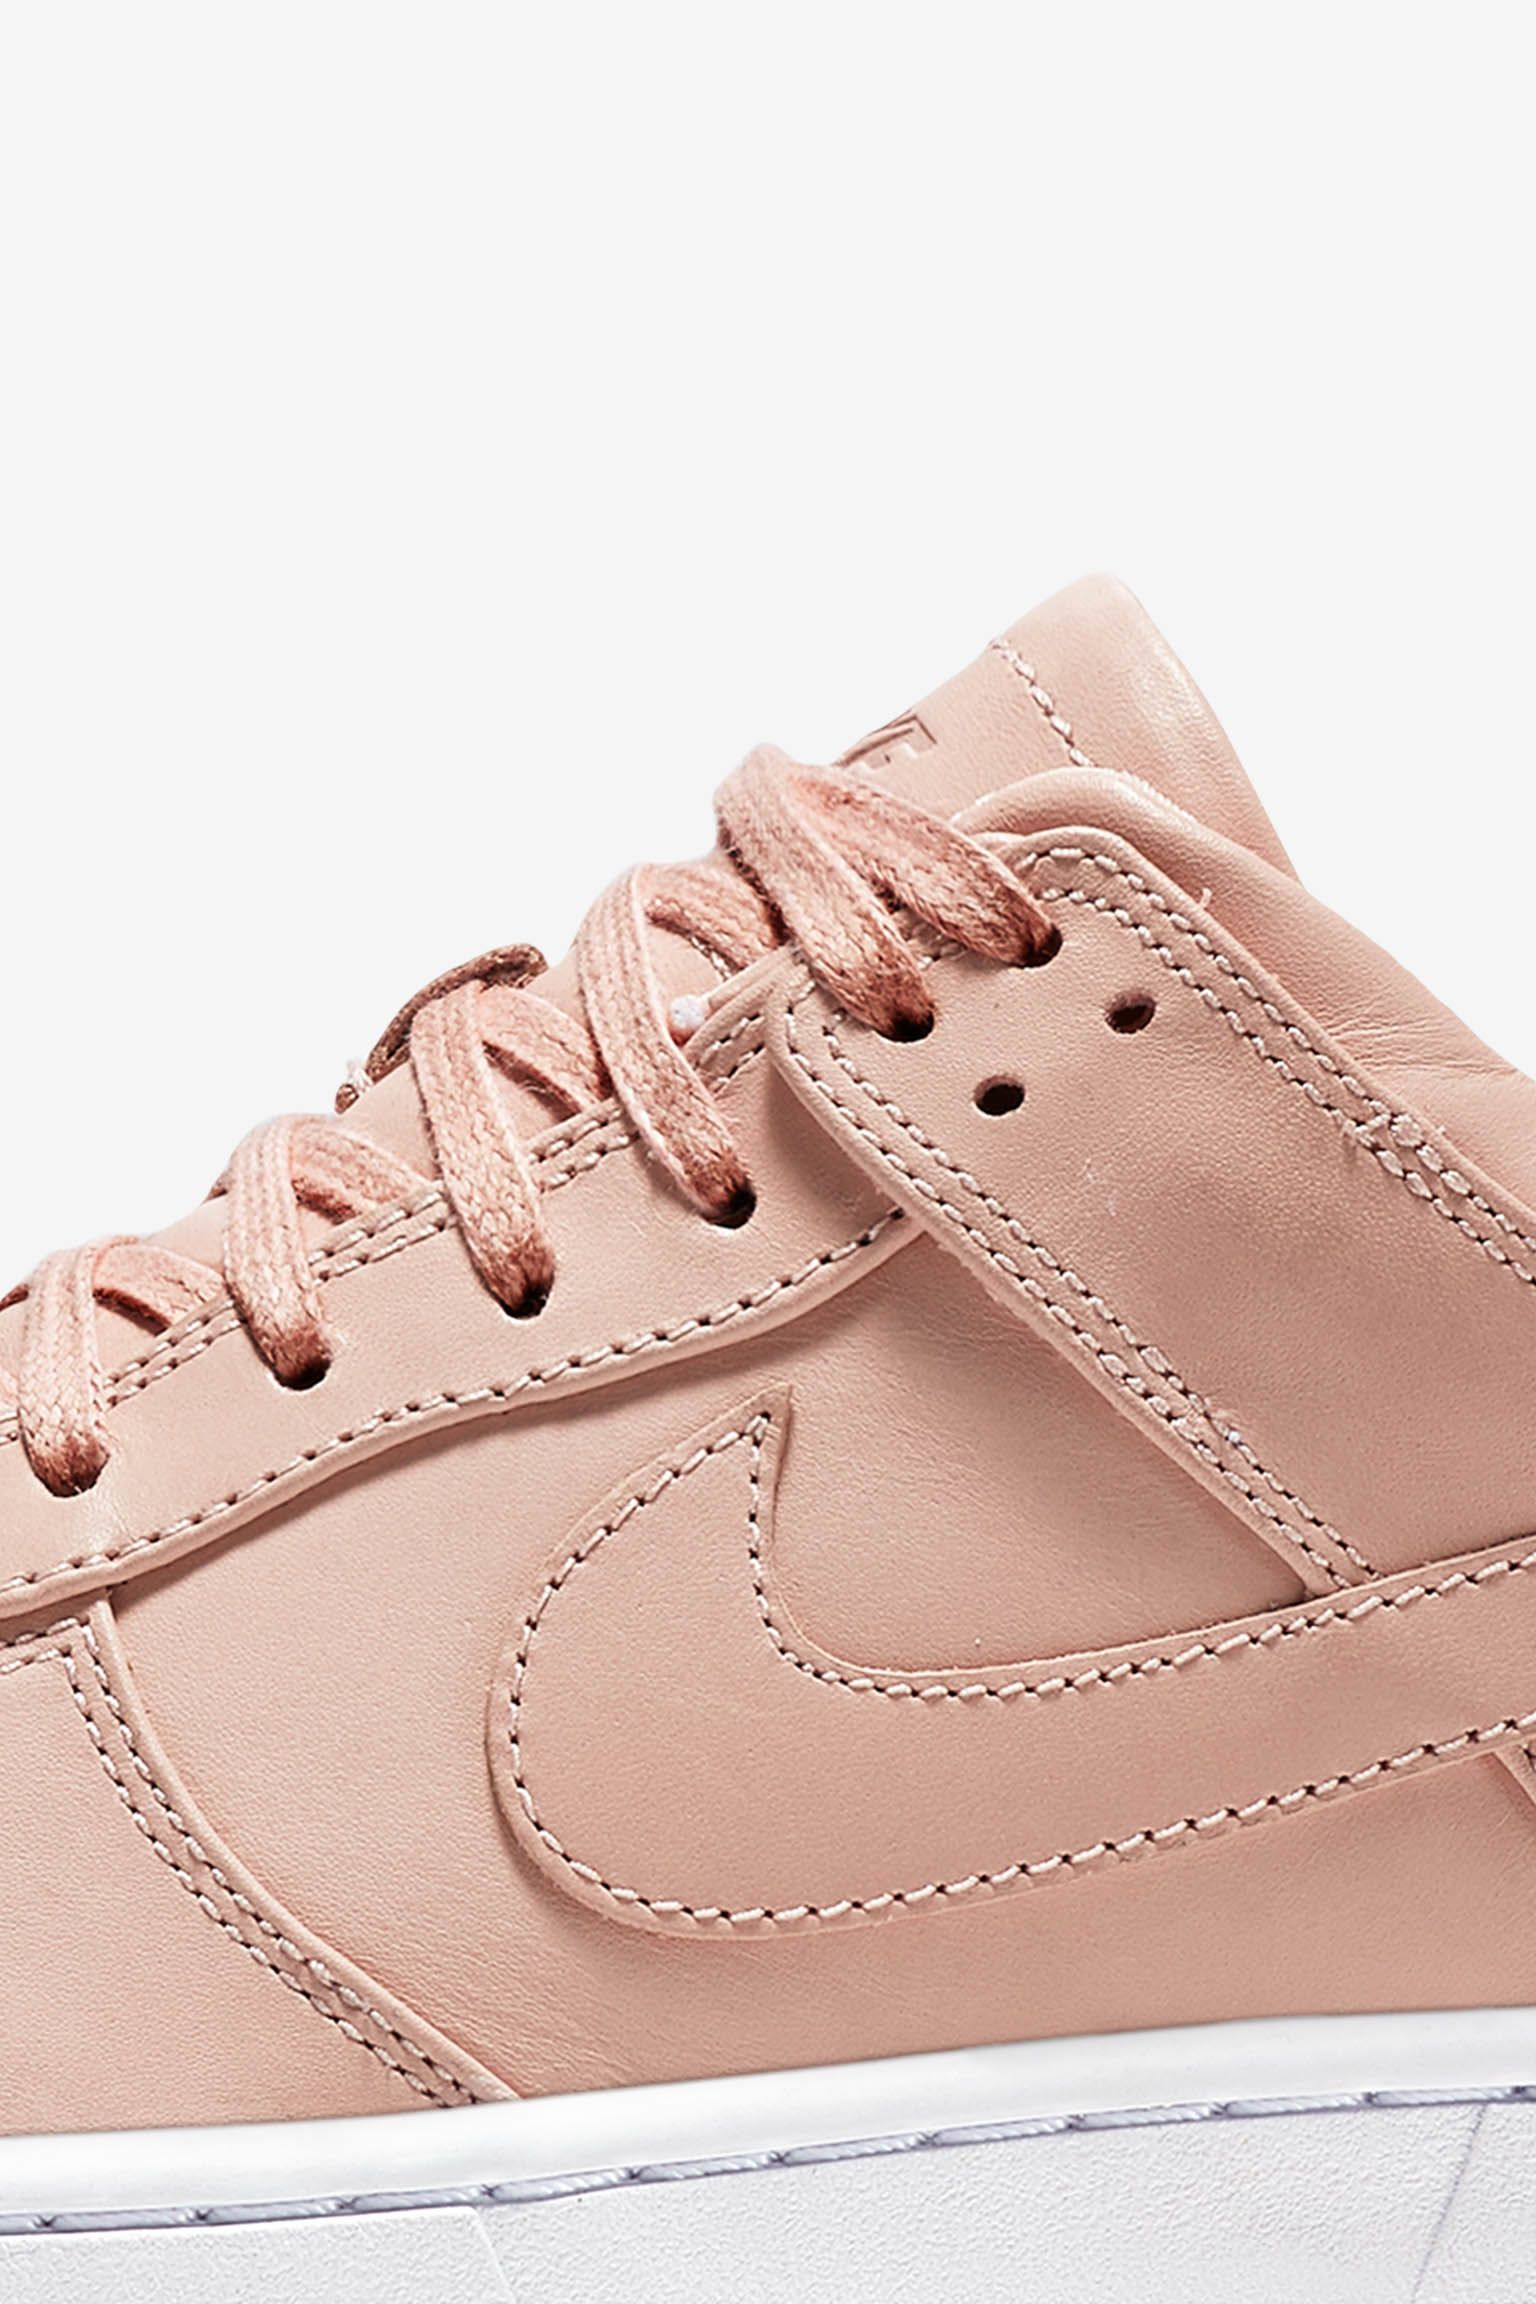 NikeLab Dunk Lux Low 'Arctic Orange'